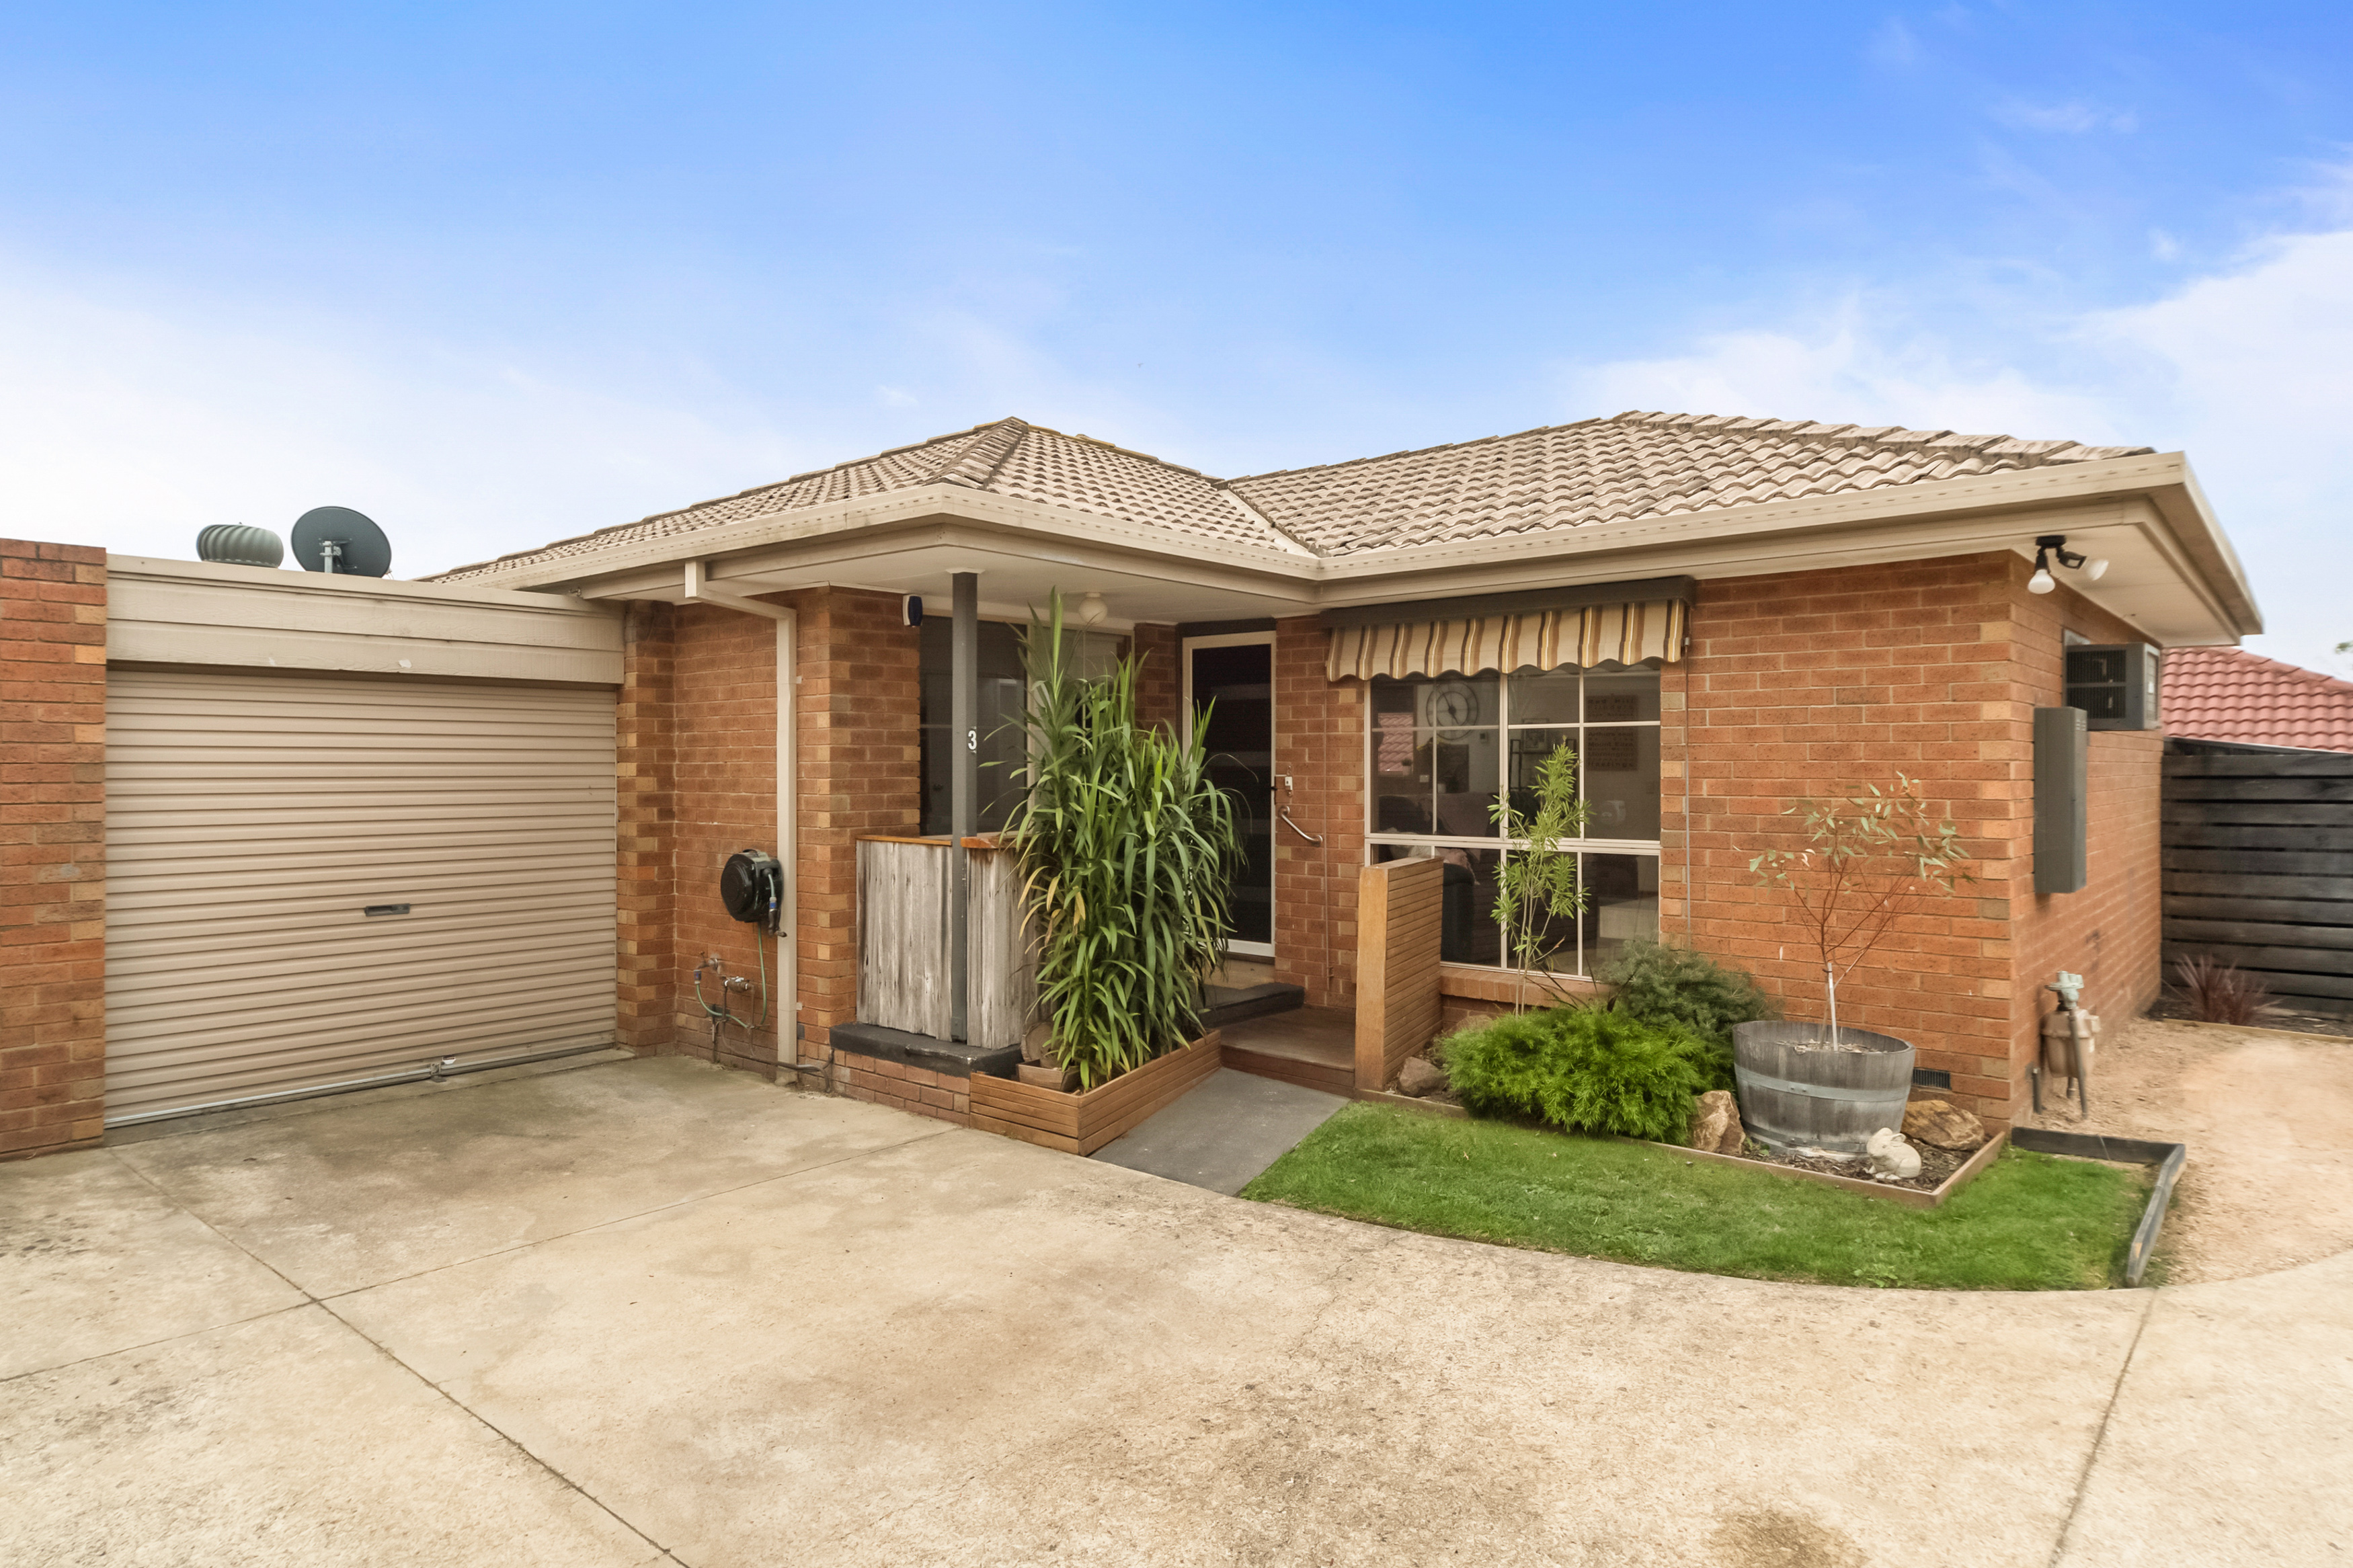 3/16 Park Lane, SOMERVILLE, VIC, 3912 - Image